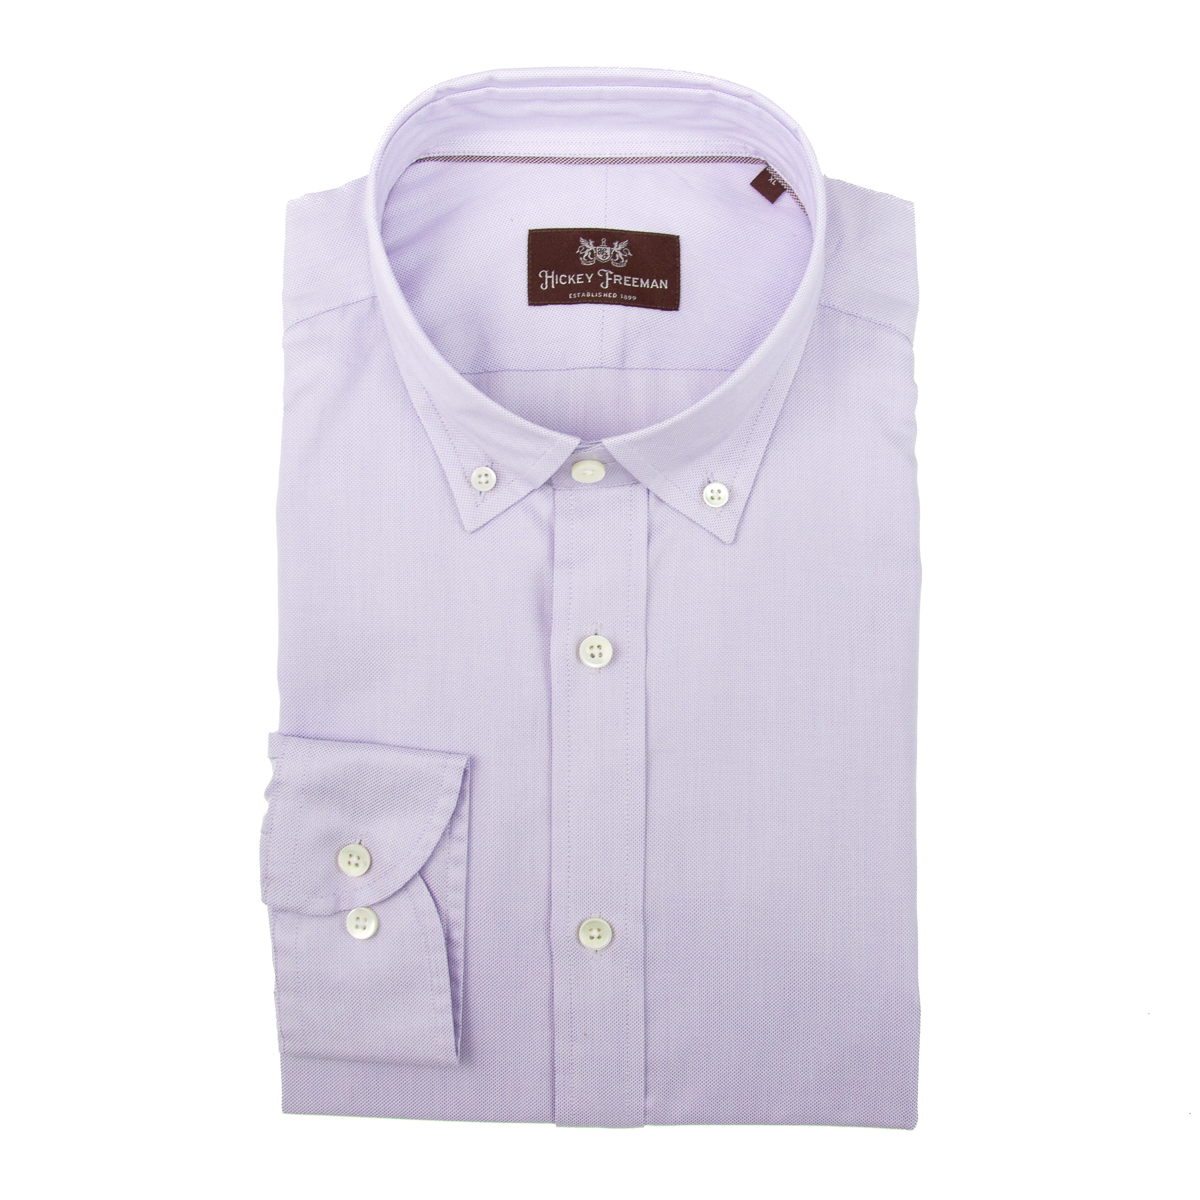 Hickey freeman men s long sleeve cotton dress shirt button for Men s spread collar shirts